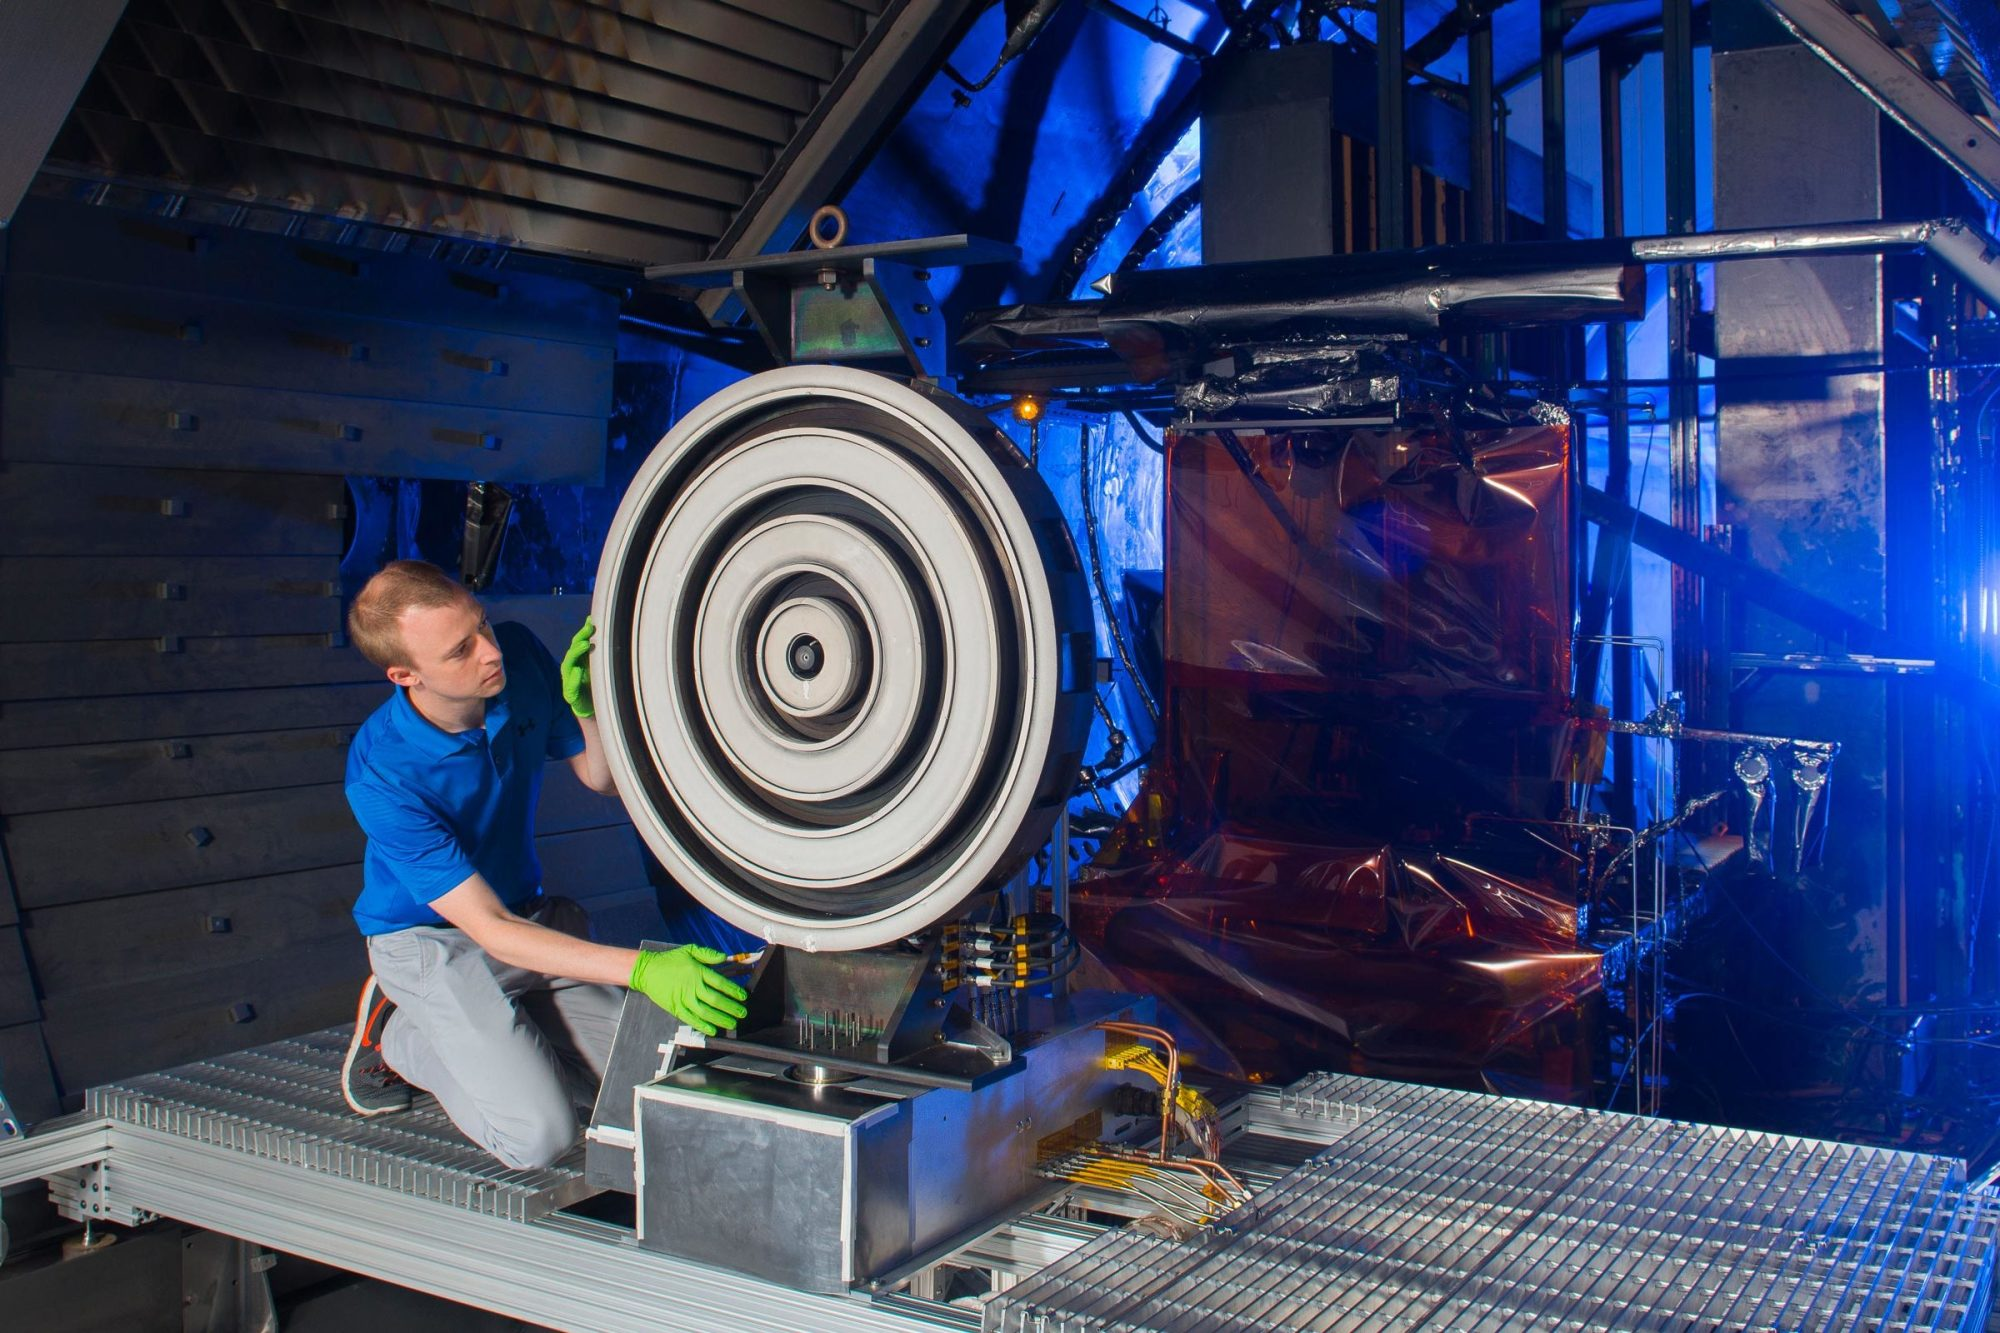 hight resolution of thruster for mars mission breaks records the michigan engineer news center